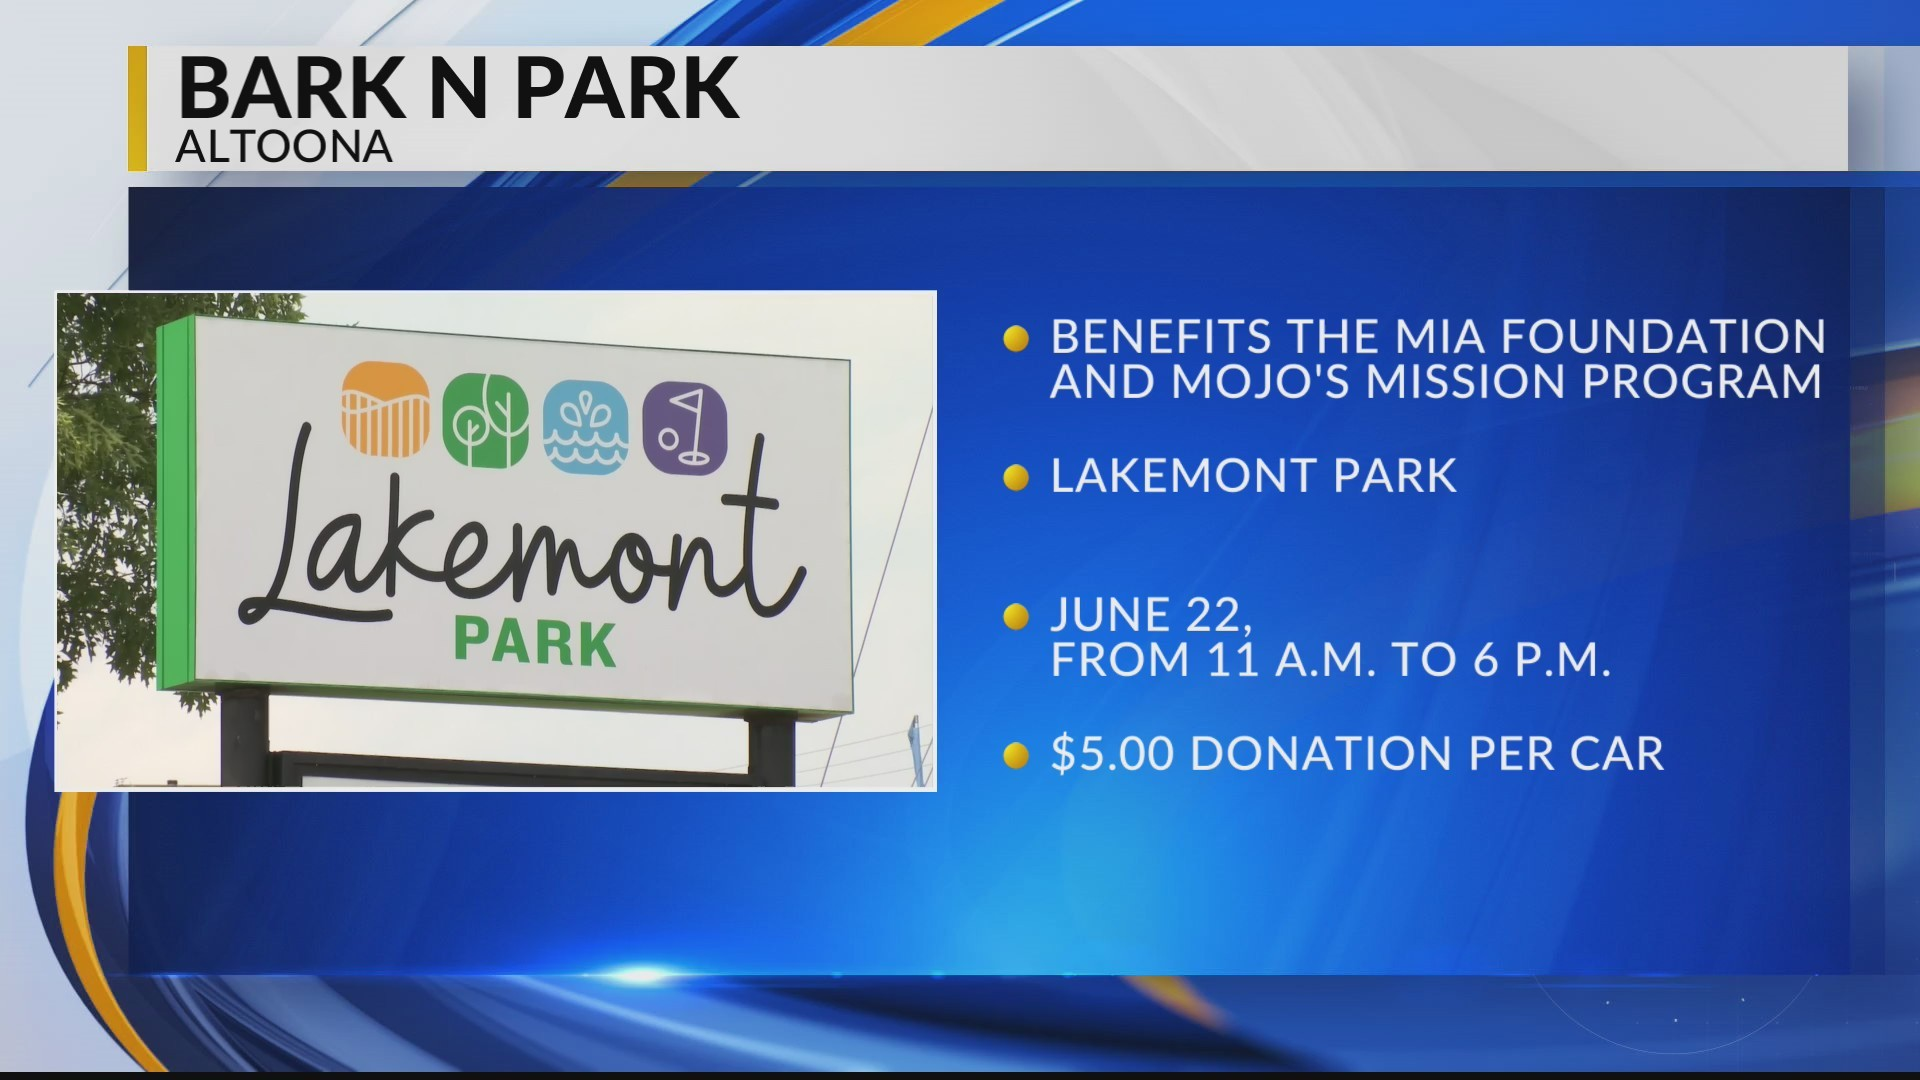 Bark in Park at Lakemont Park benefiting Mojo's Mission